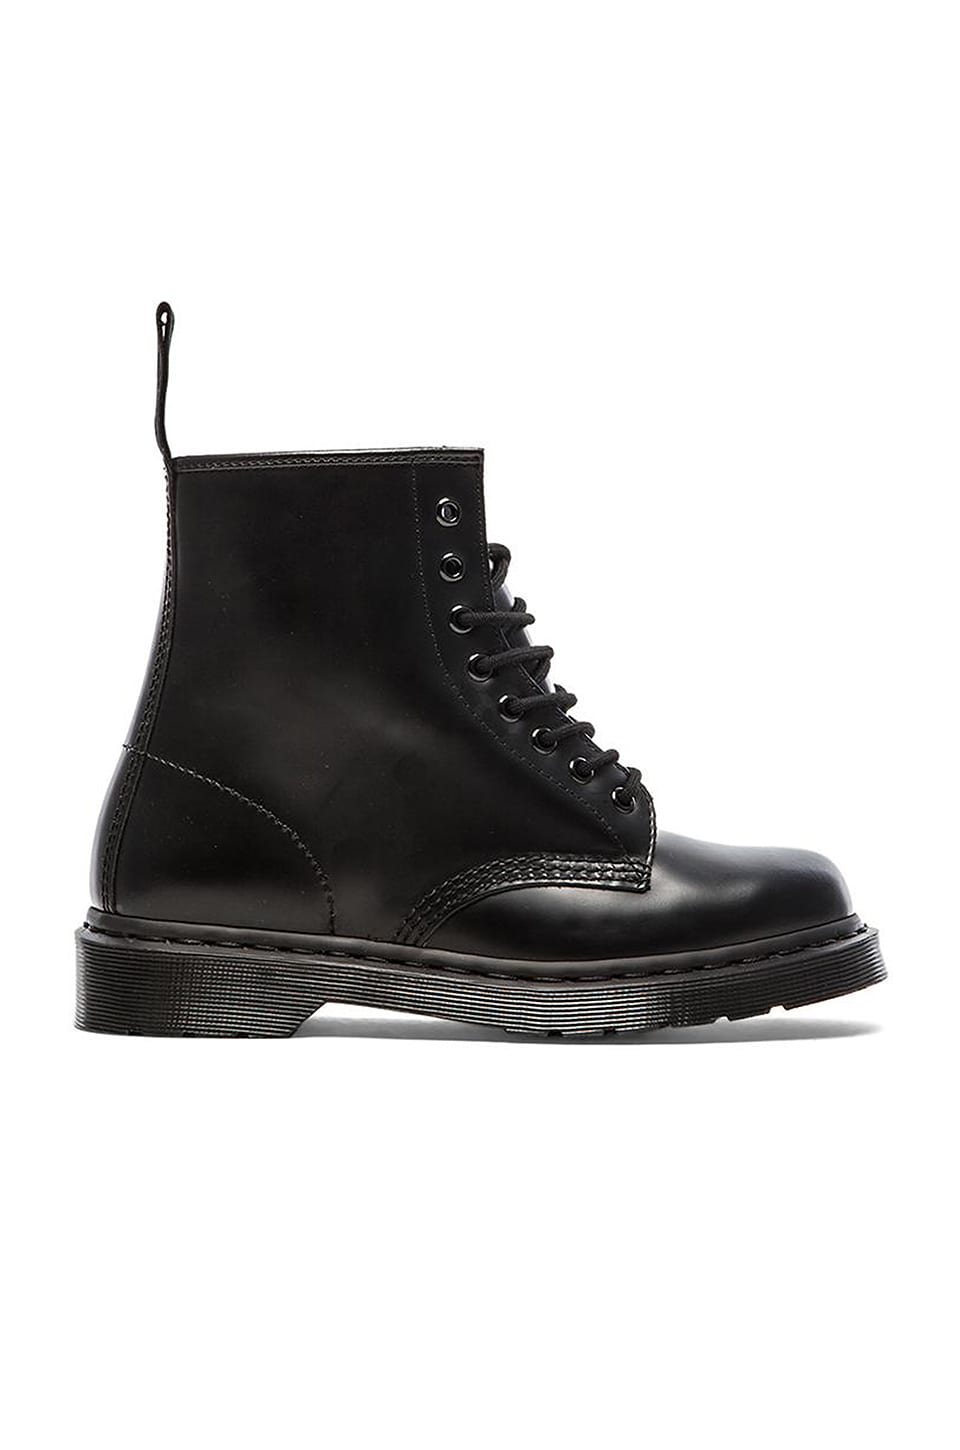 1460 8-Eye Boot by Dr. Martens